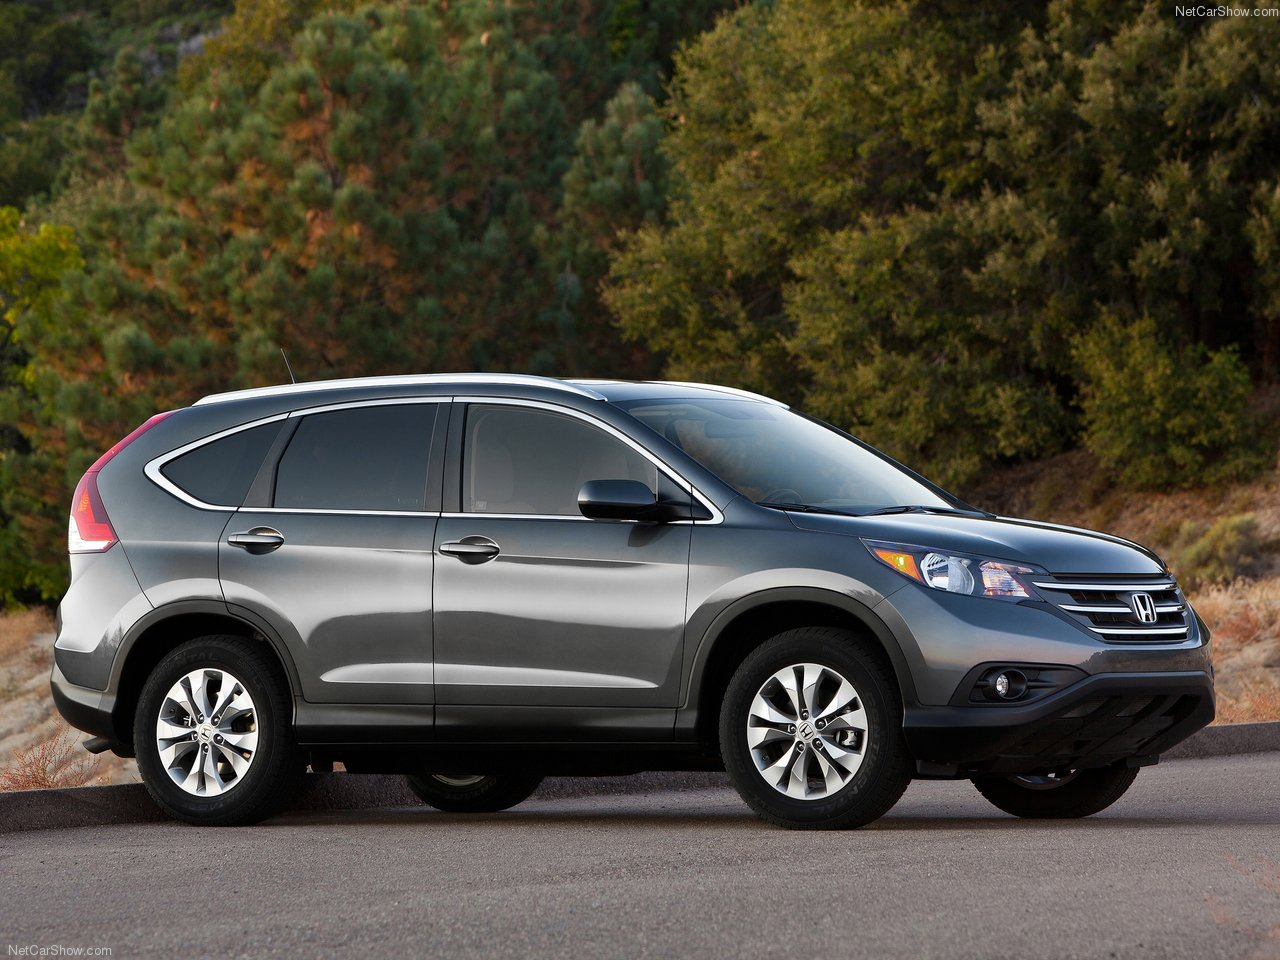 Honda CR-V photo 86930